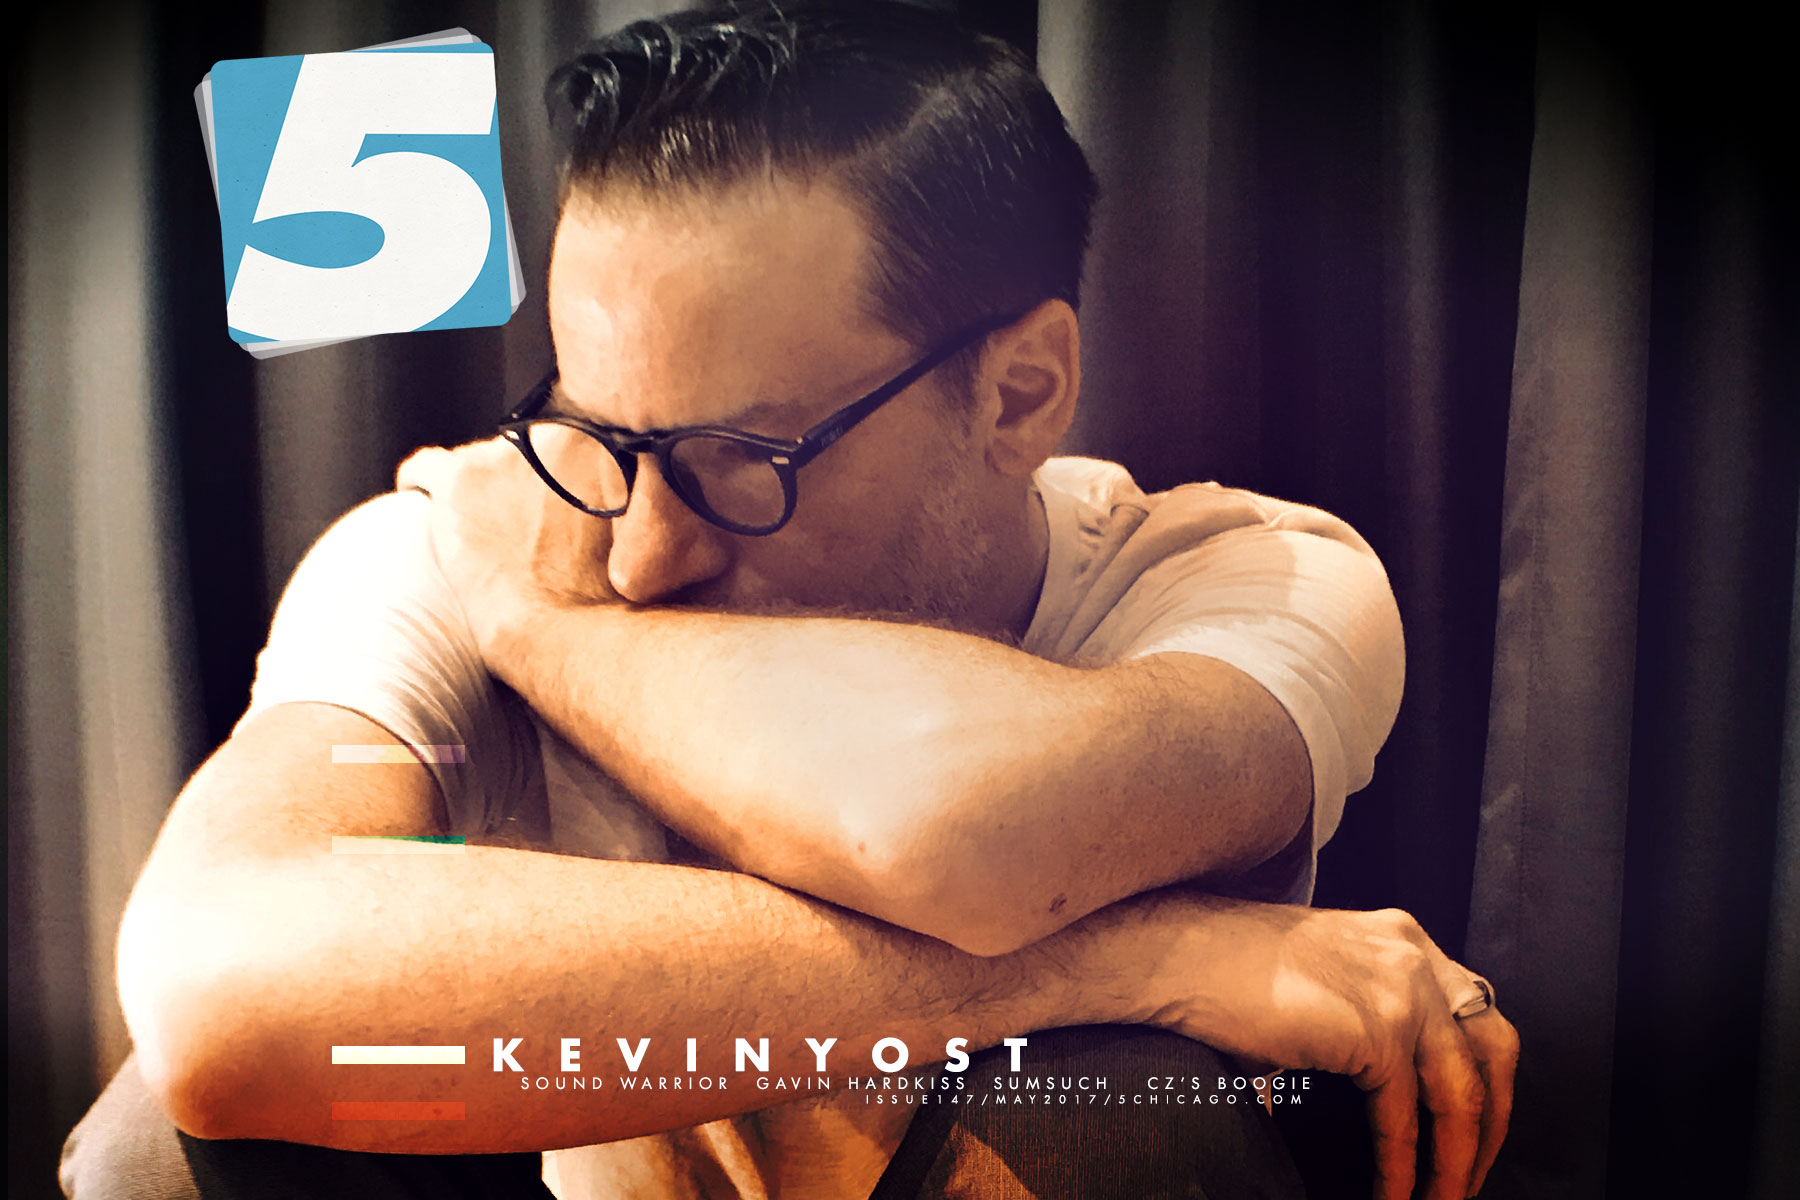 kevin yost in issue 147 of 5 Magazine